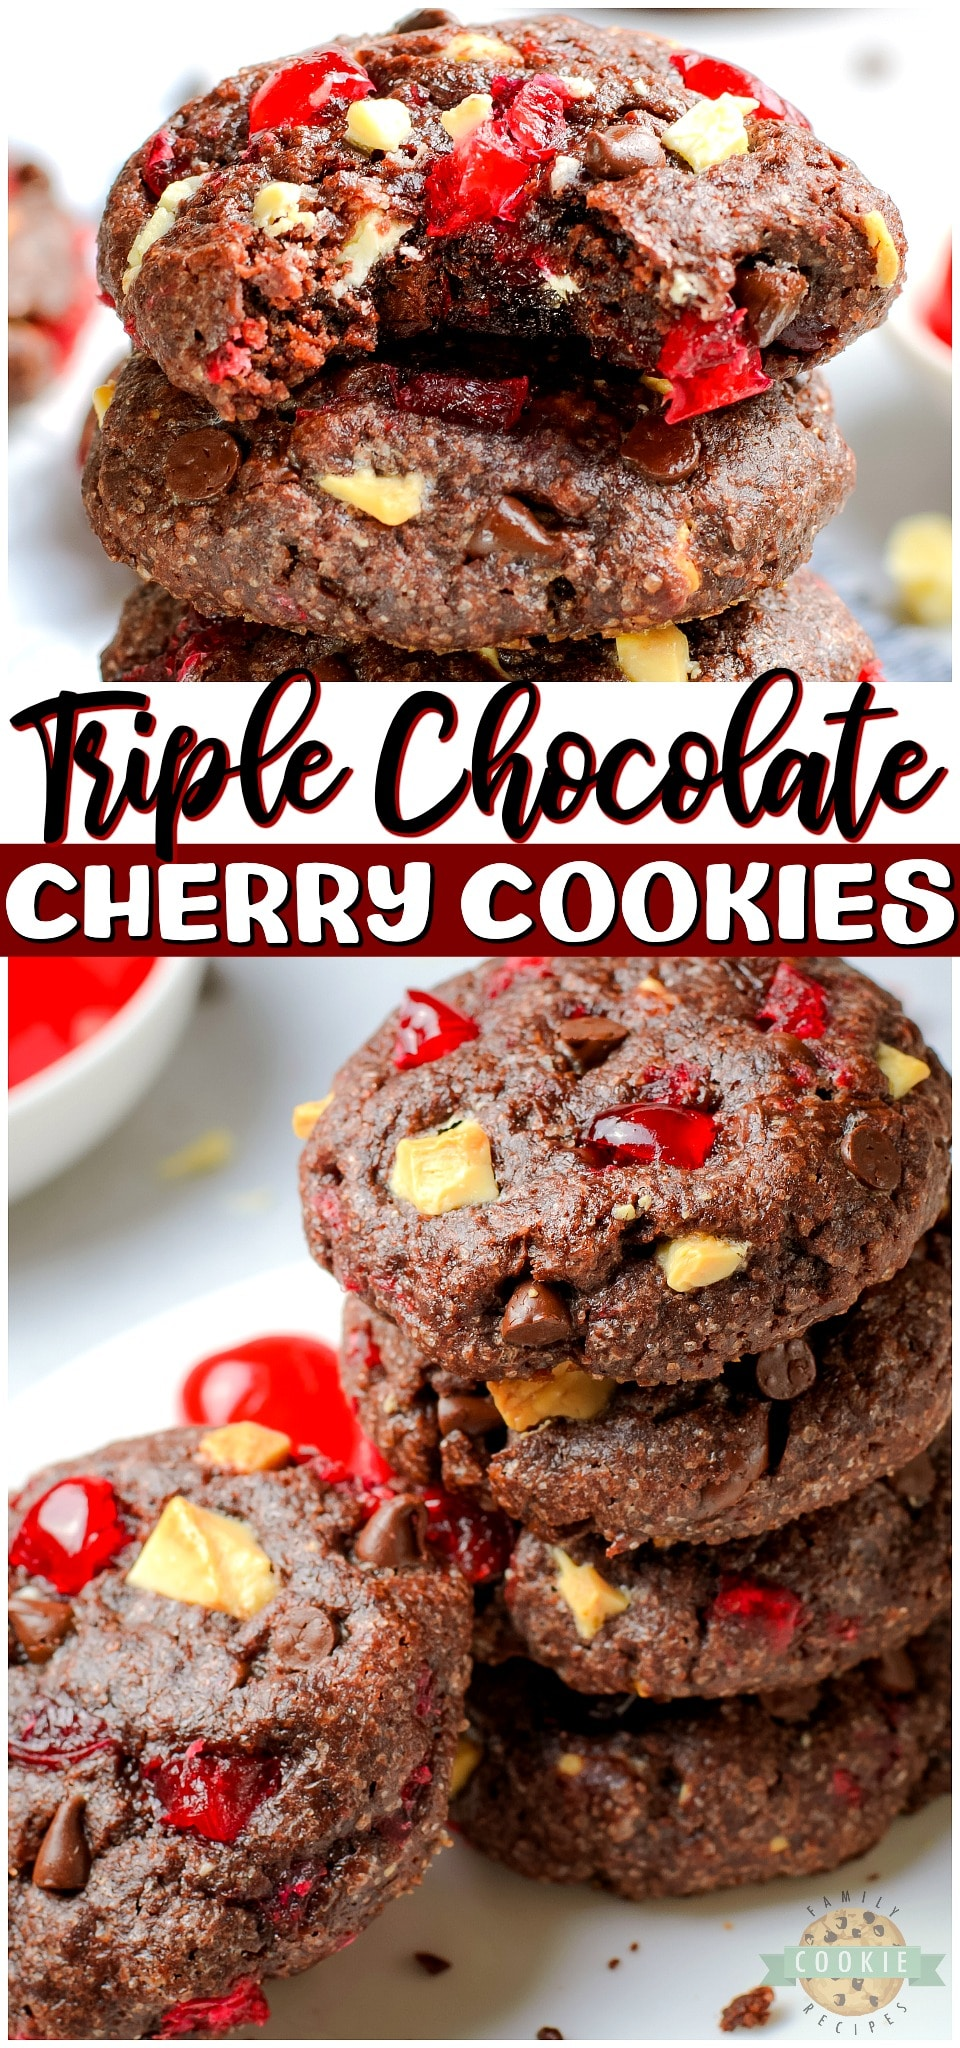 Triple Chocolate Cherry Cookies are Black Forest Cake in cookie form! Soft & chewy chocolate cookies full of white and dark chocolate chips & cherry bits with lovely flavor! #cookies #chocolate #cherry #cherrycookies #cherries #baking #dessert from FAMILY COOKIE RECIPES via @familycookierecipes